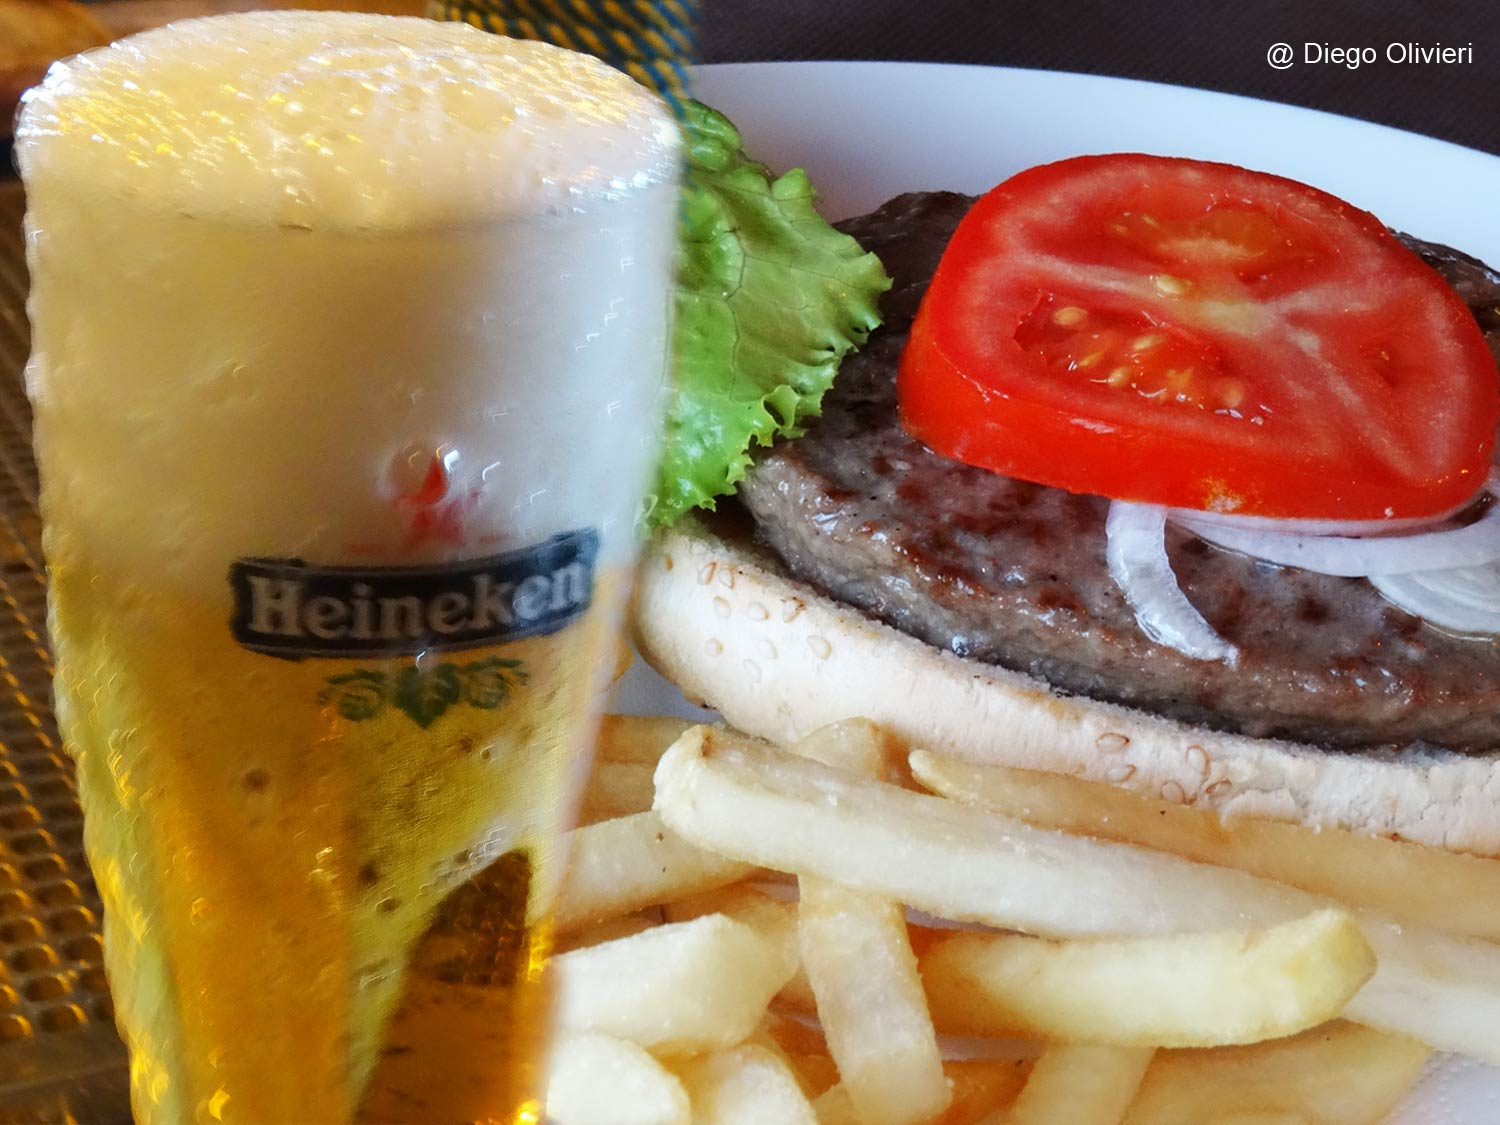 Pirate-Cattolica-©DO-15-birra-hamburger-chips